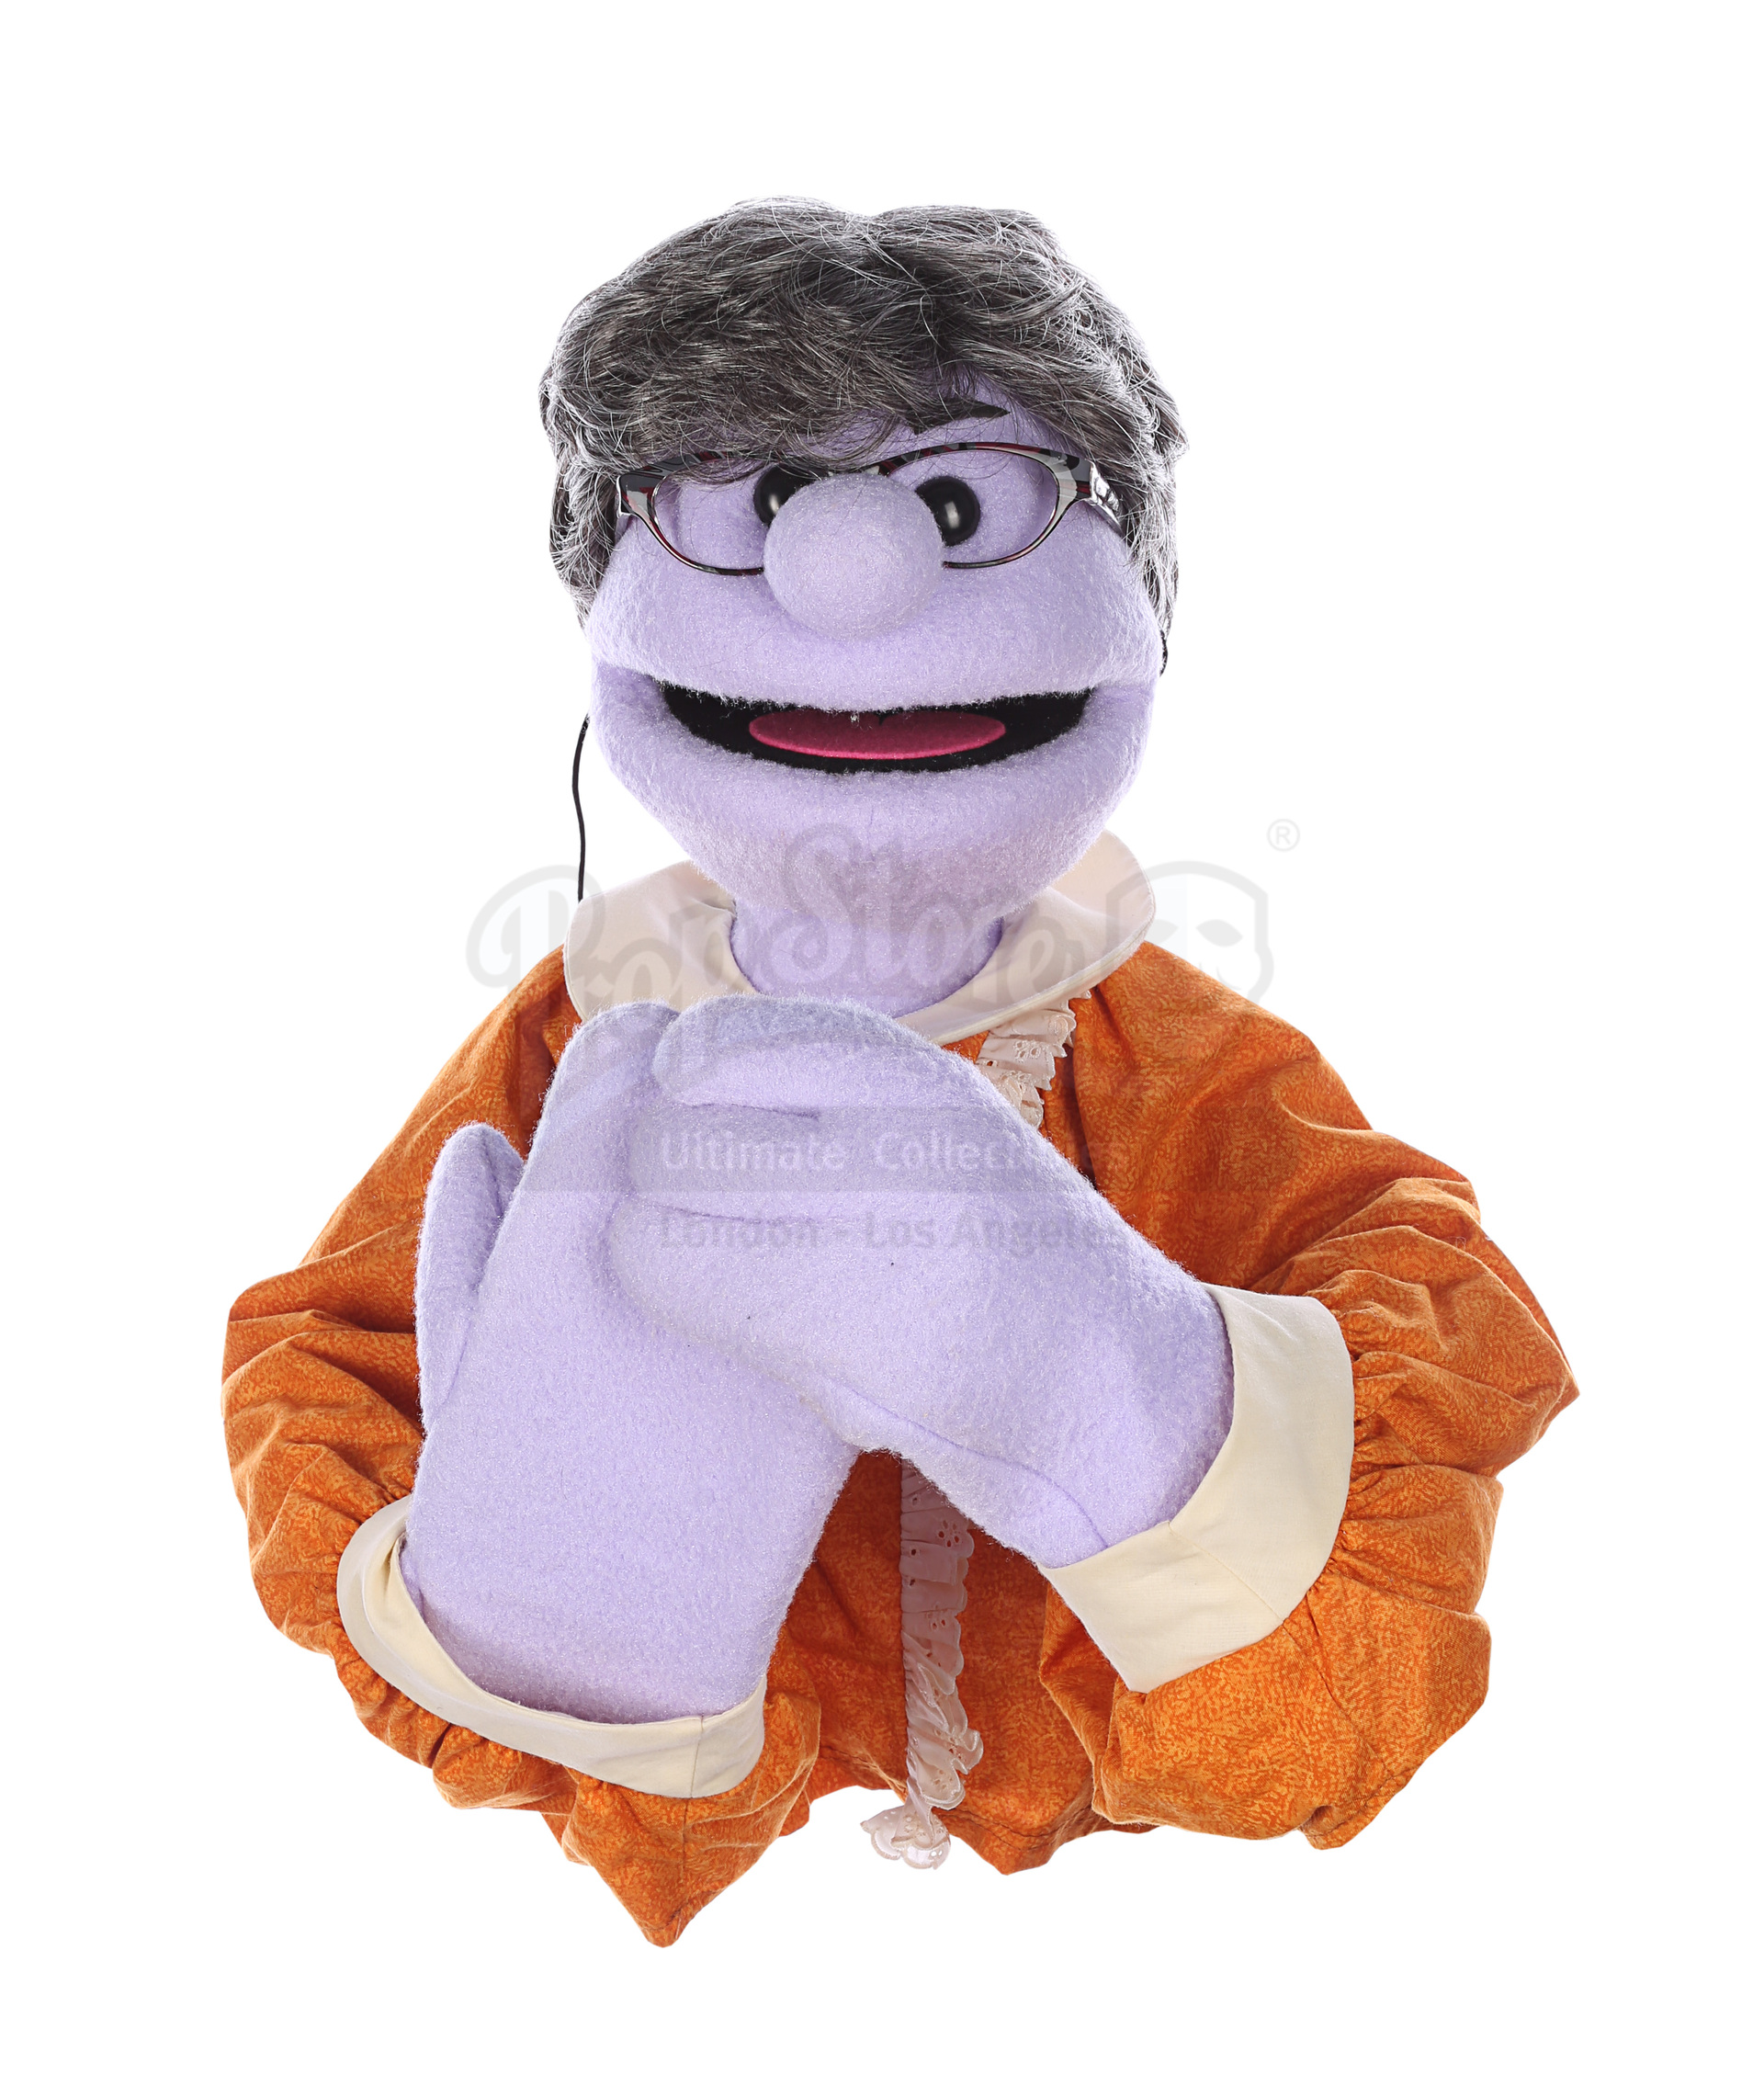 AVENUE Q (STAGE SHOW) - Cameo Puppet Collection: Mrs T, Ricky and Newcomer - Image 2 of 13